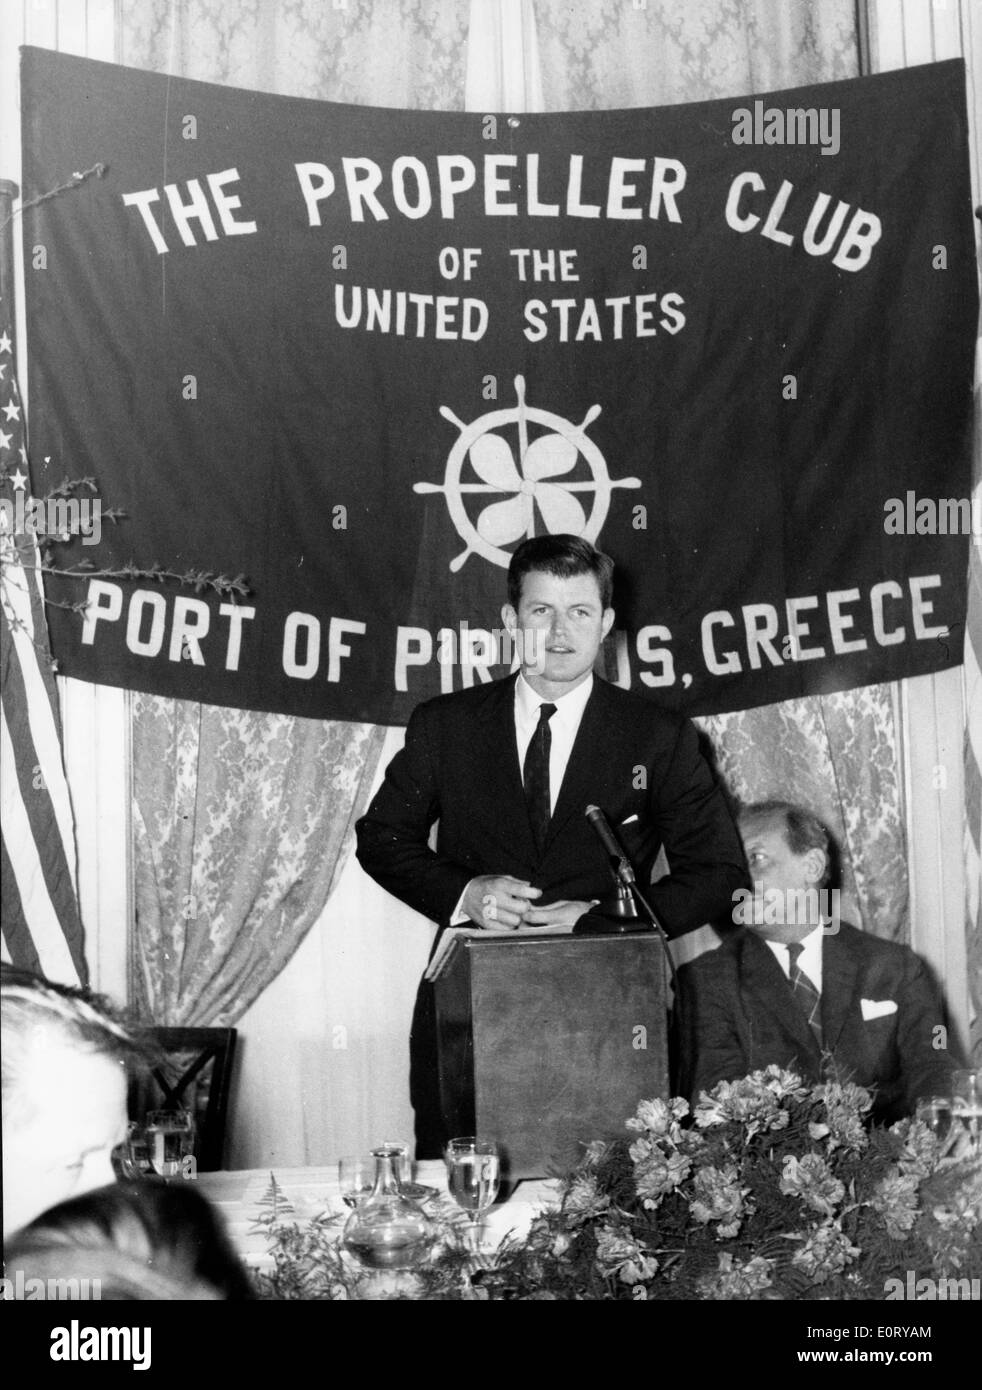 Senator Ted Kennedy speaks at Propeller Club - Stock Image